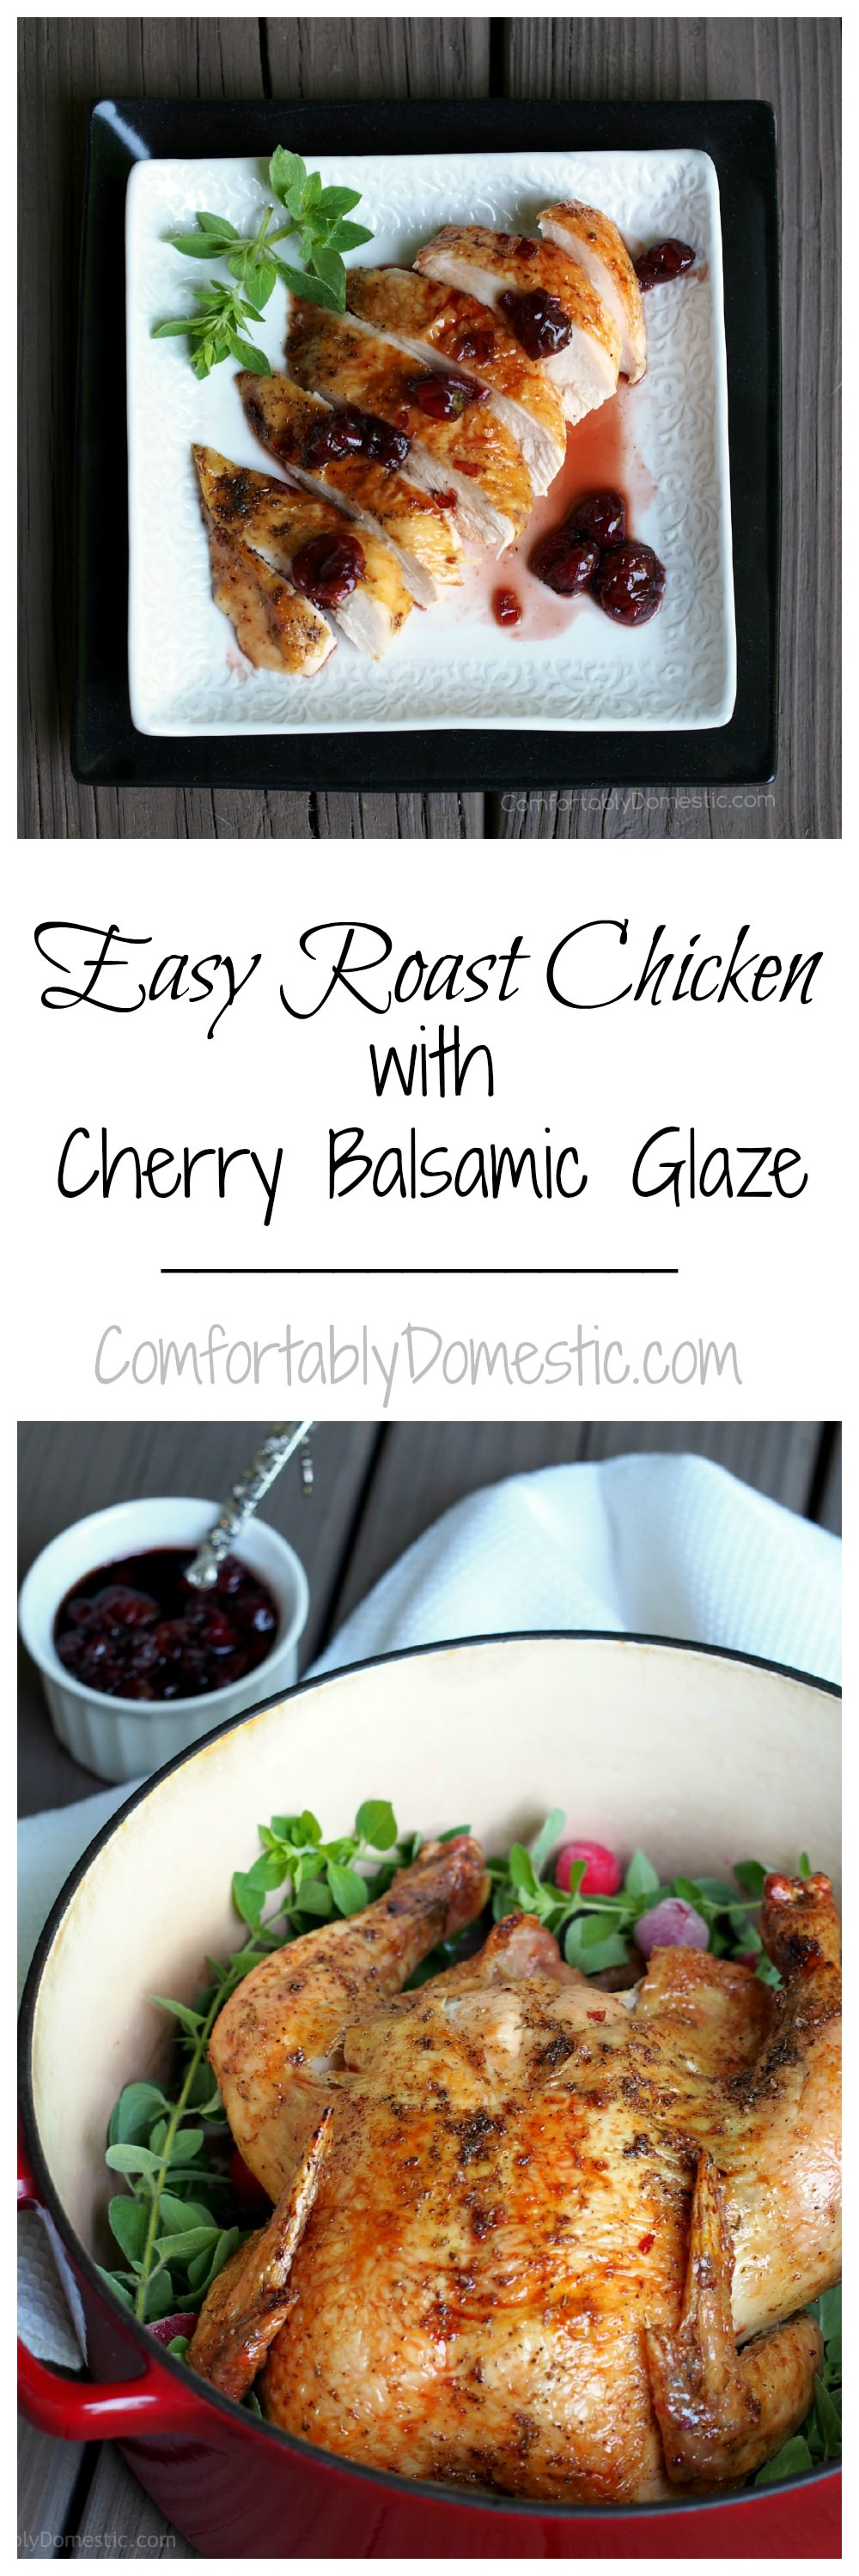 Easy-Roast-Chicken-with-Cherry-Balsamic-Glaze | ComfortablyDomestic.com